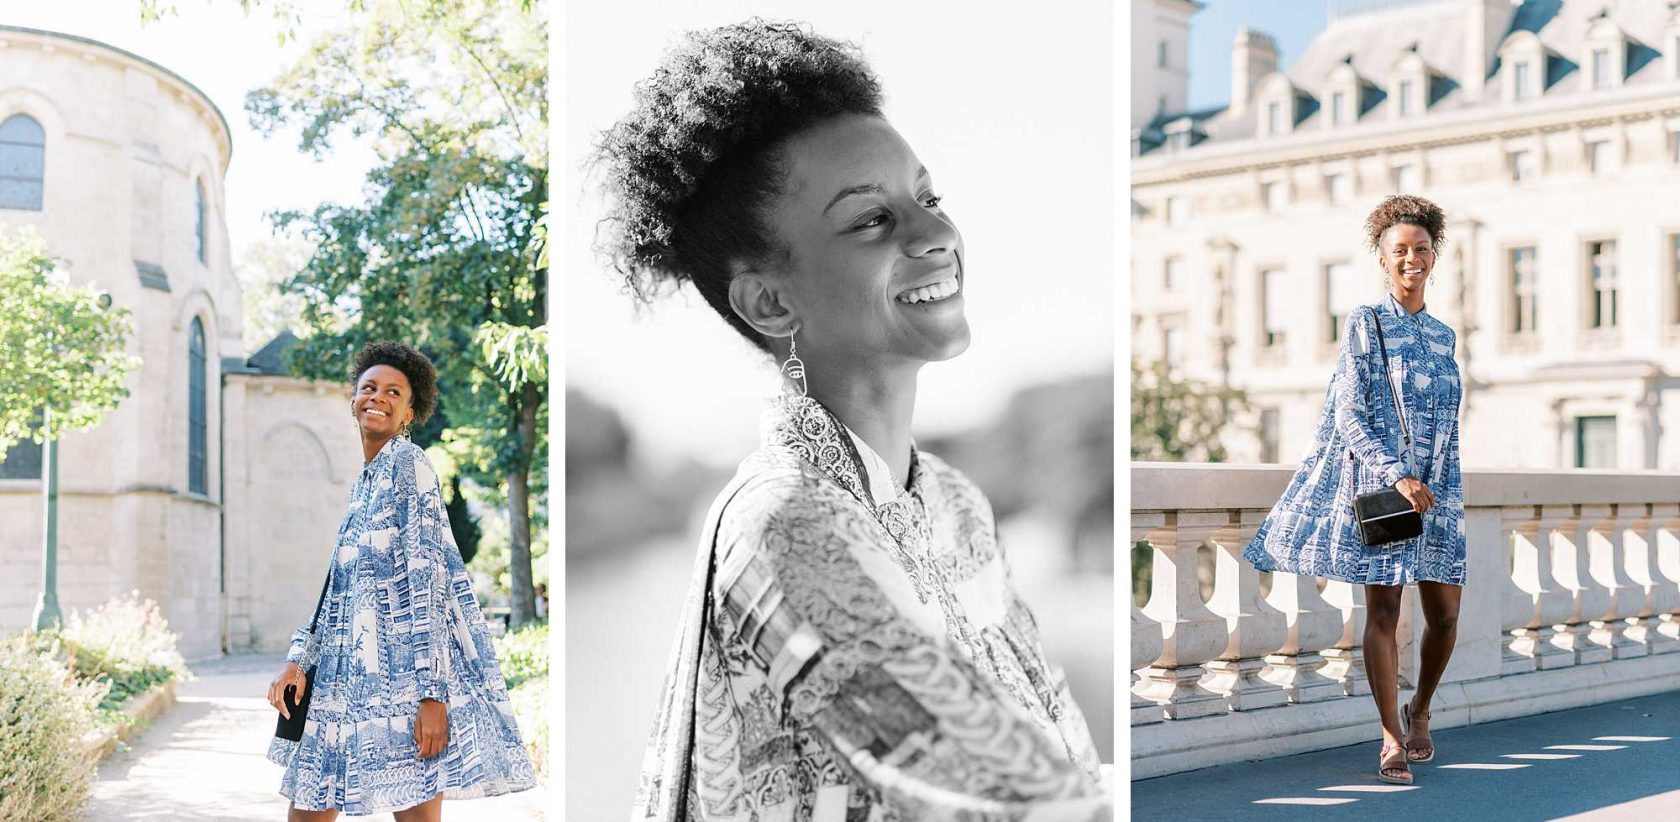 trio of photos from my first photo shoot after lockdown: 3 portraits with Lucie in a blue and white dress in central Paris